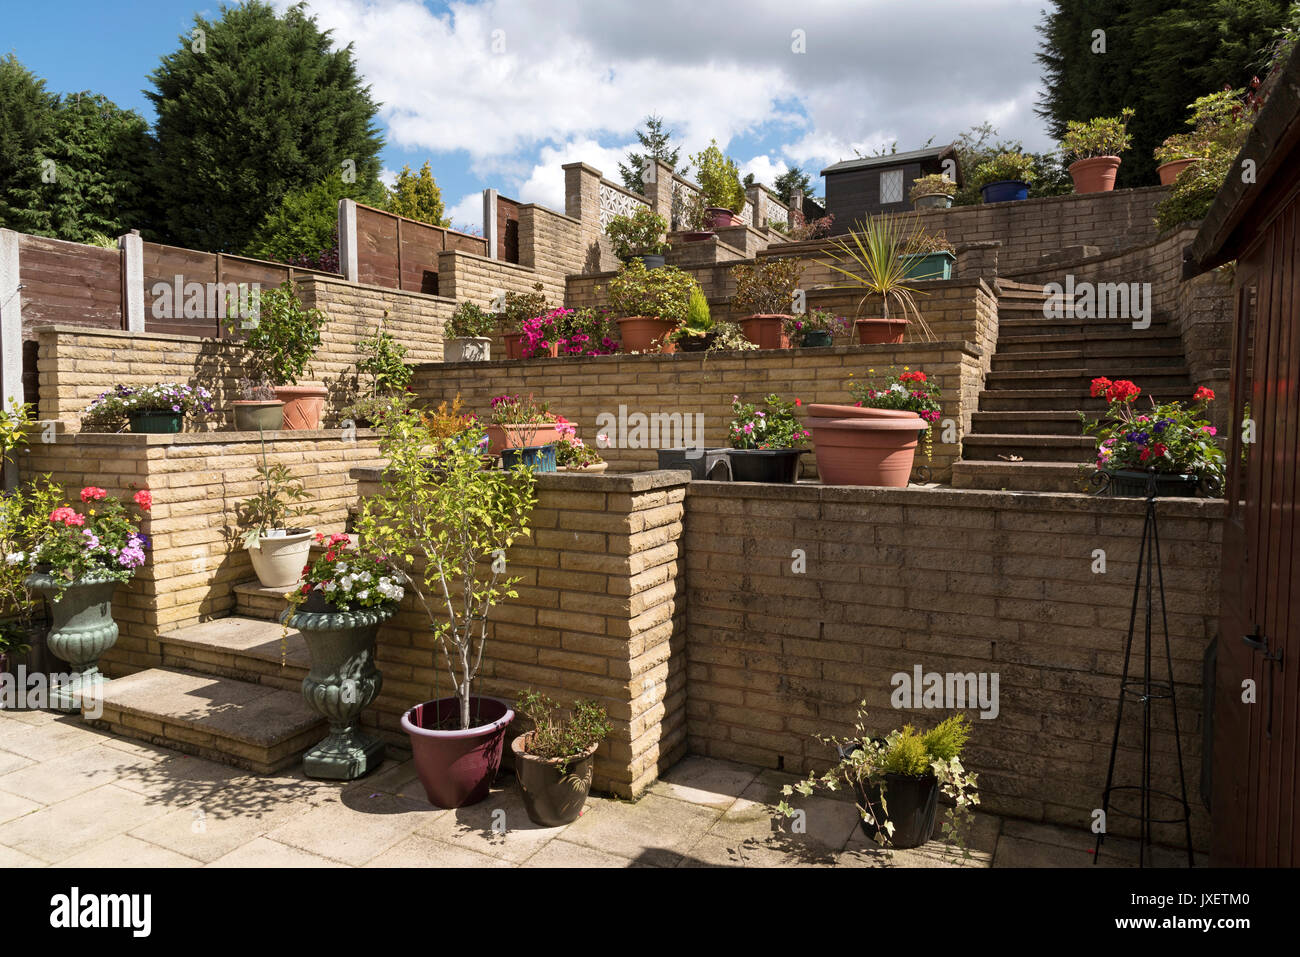 Suburban Garden Stock Photos & Suburban Garden Stock Images - Alamy